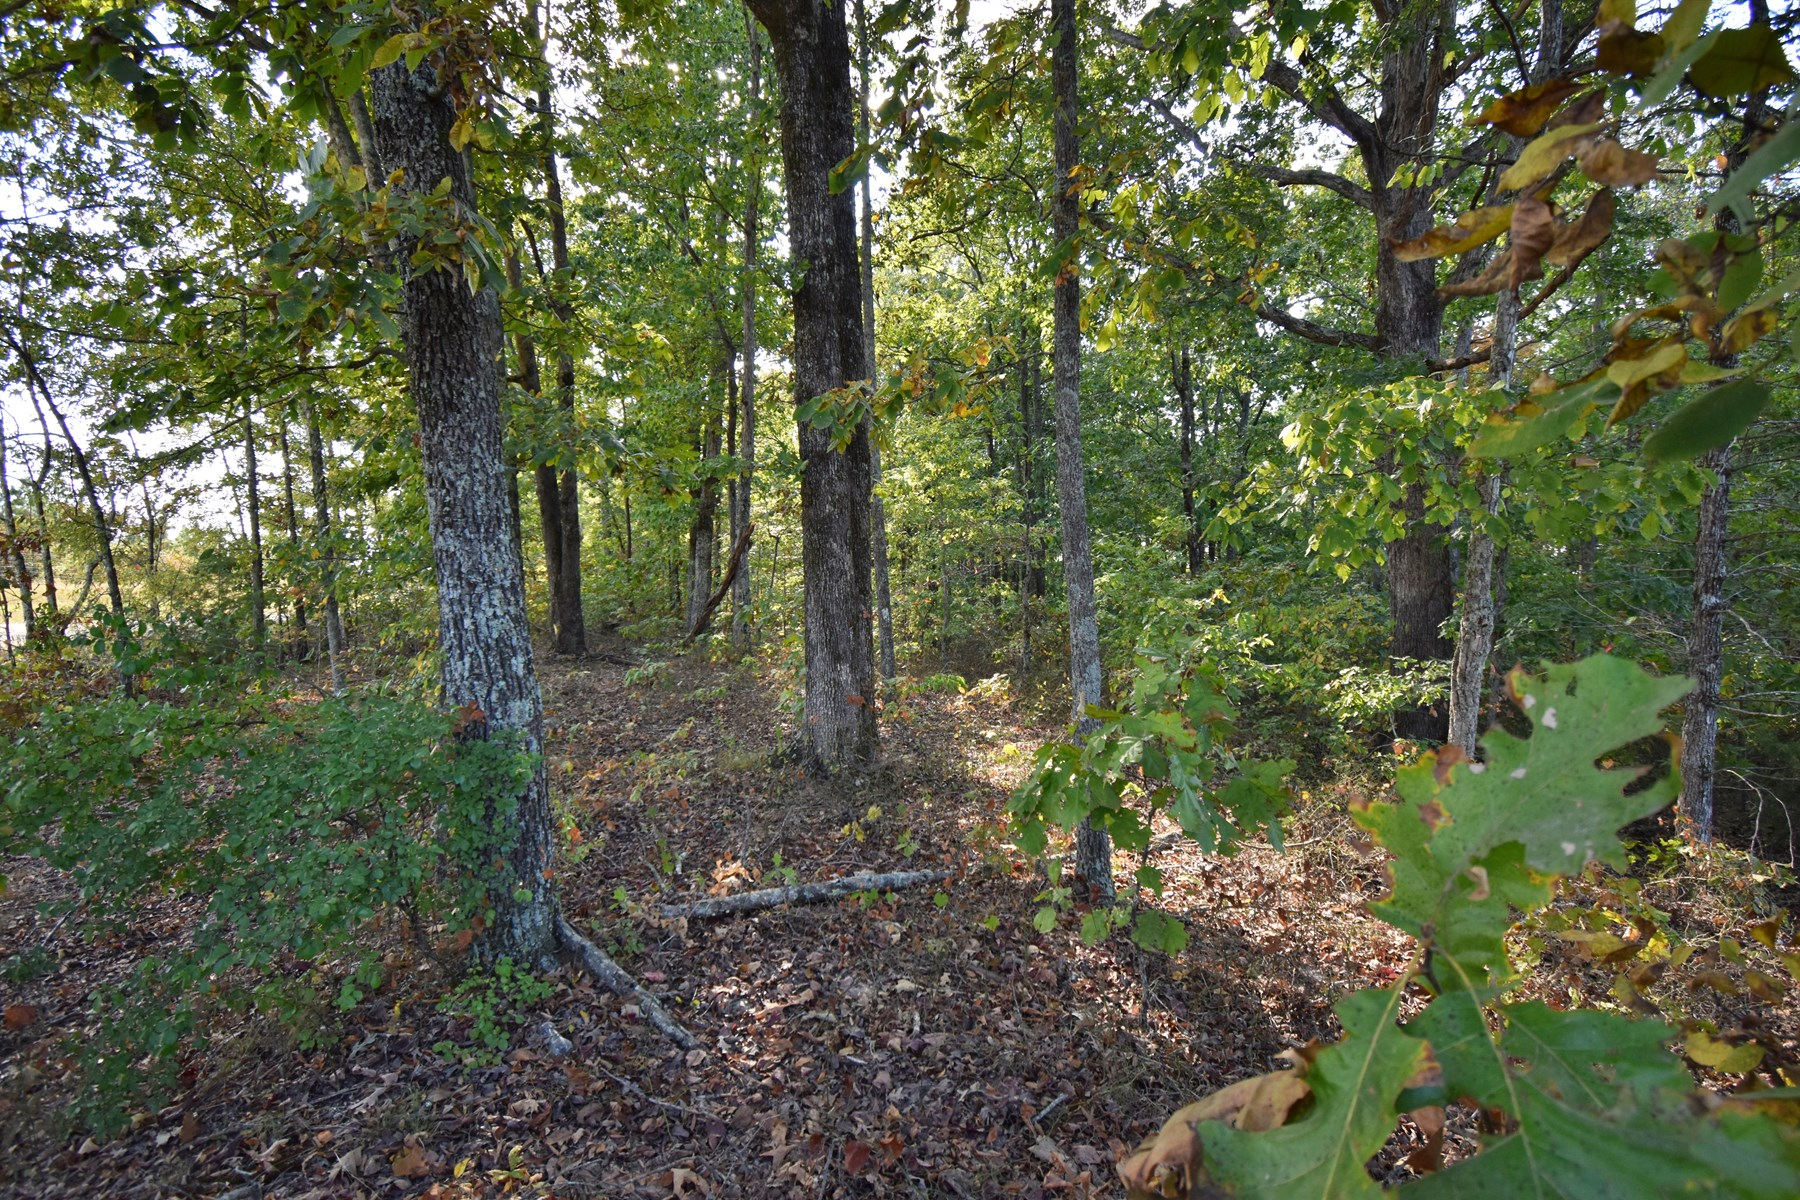 16.68 acres of Vacant Land For Sale in Tennessee.